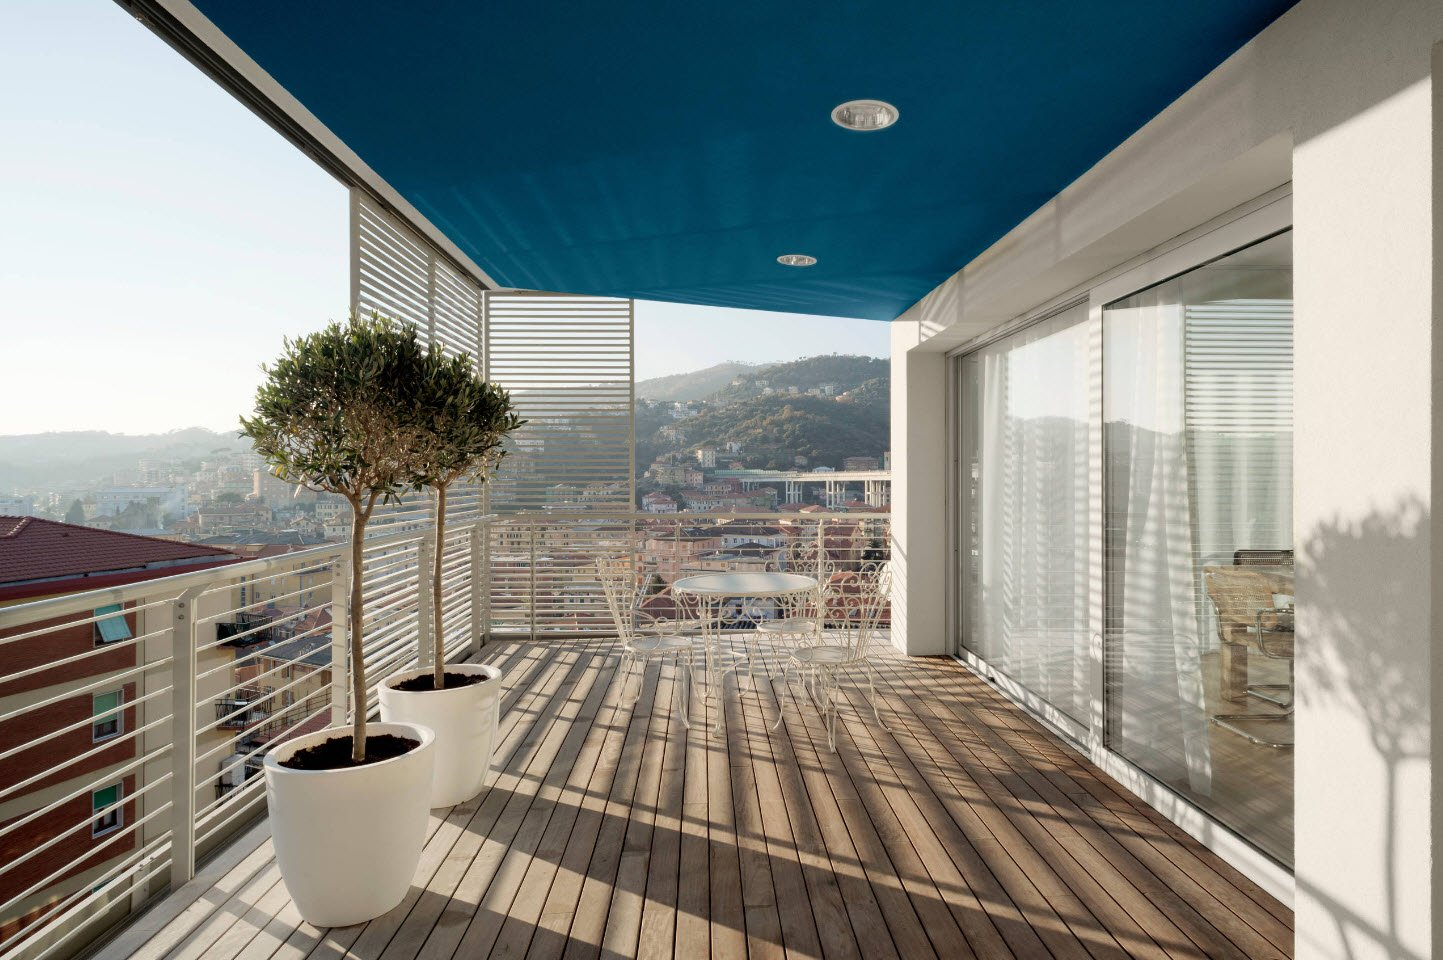 Gorgeous modern designed balcony with large pots for decorative trees and transparent delimeters